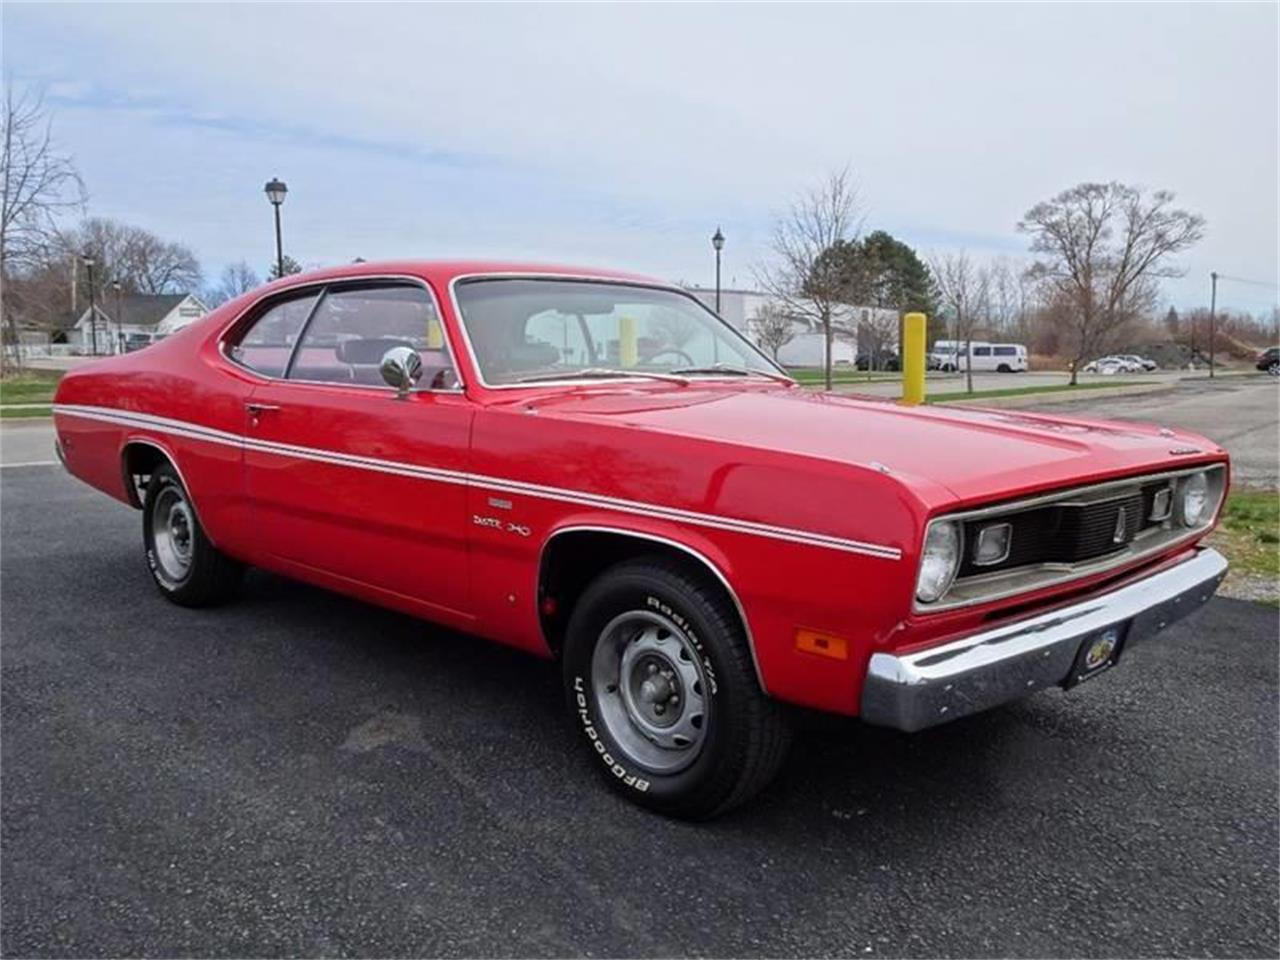 Large Picture of '70 Duster located in Hilton New York - $34,850.00 - PX3M